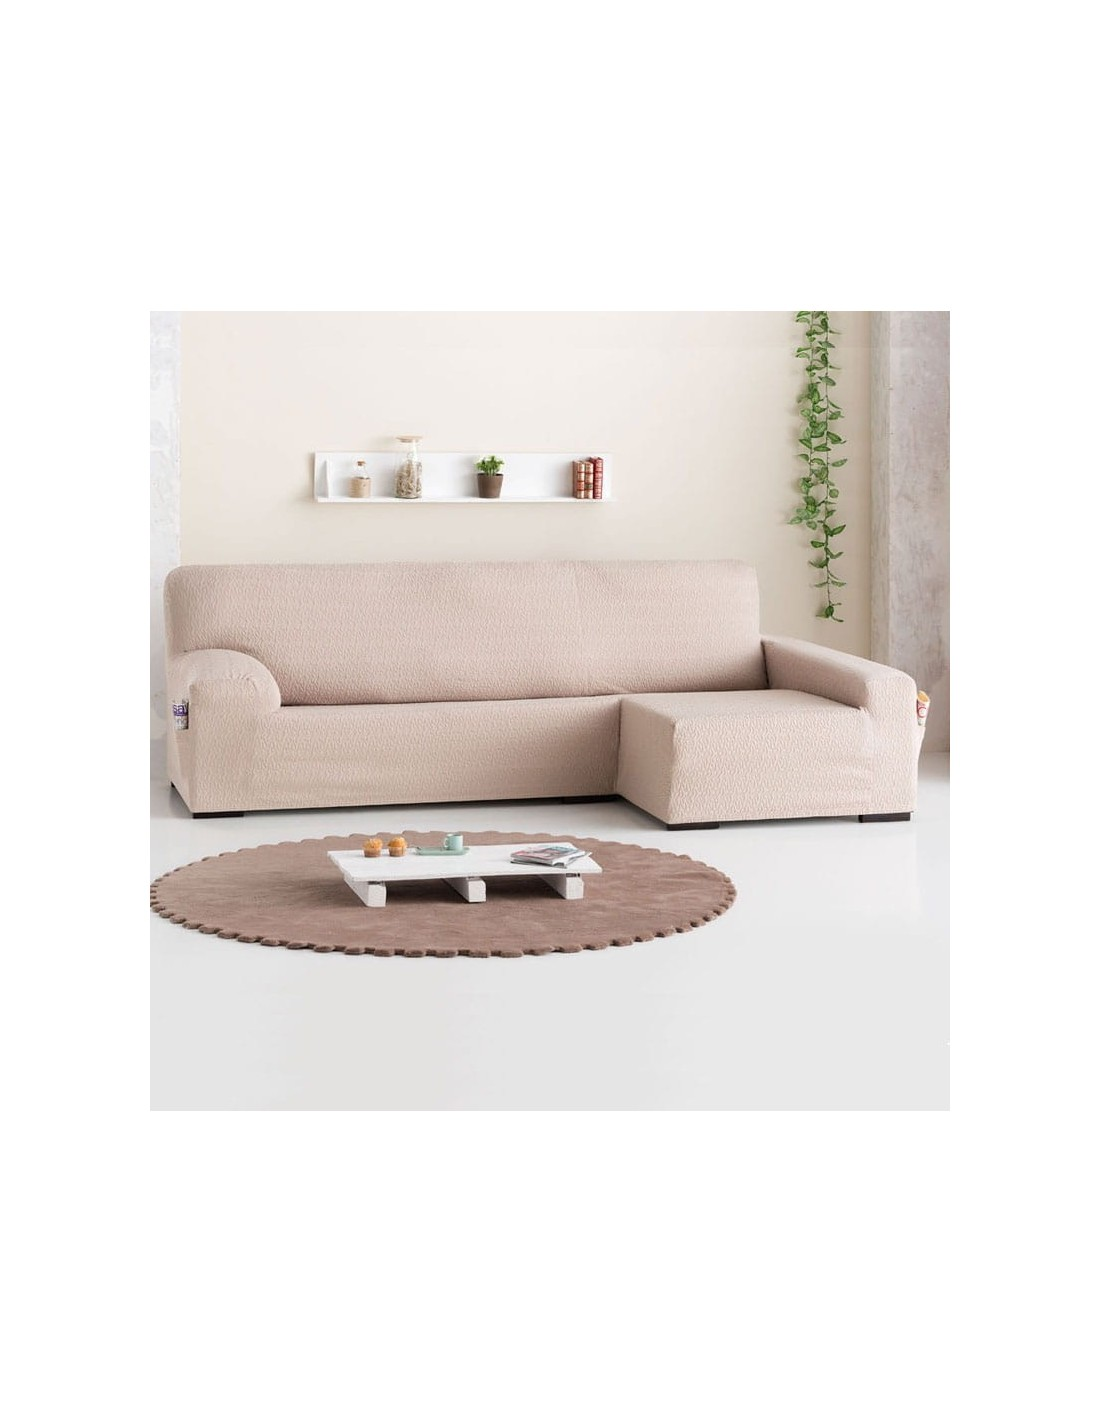 Funda sof chaise longue eysa brazo largo tendre sofundas for Sofa chester chaise longue